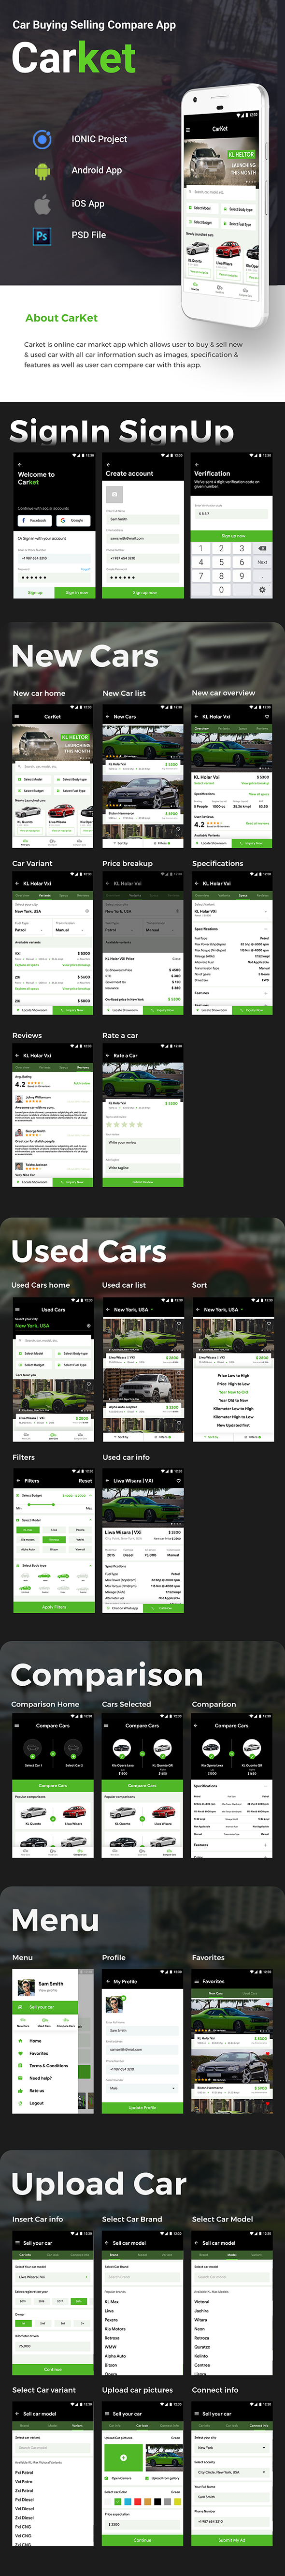 Car Buying and Selling Android App + iOS App Template | HTML + Css IONIC 3 | CarKet - 2